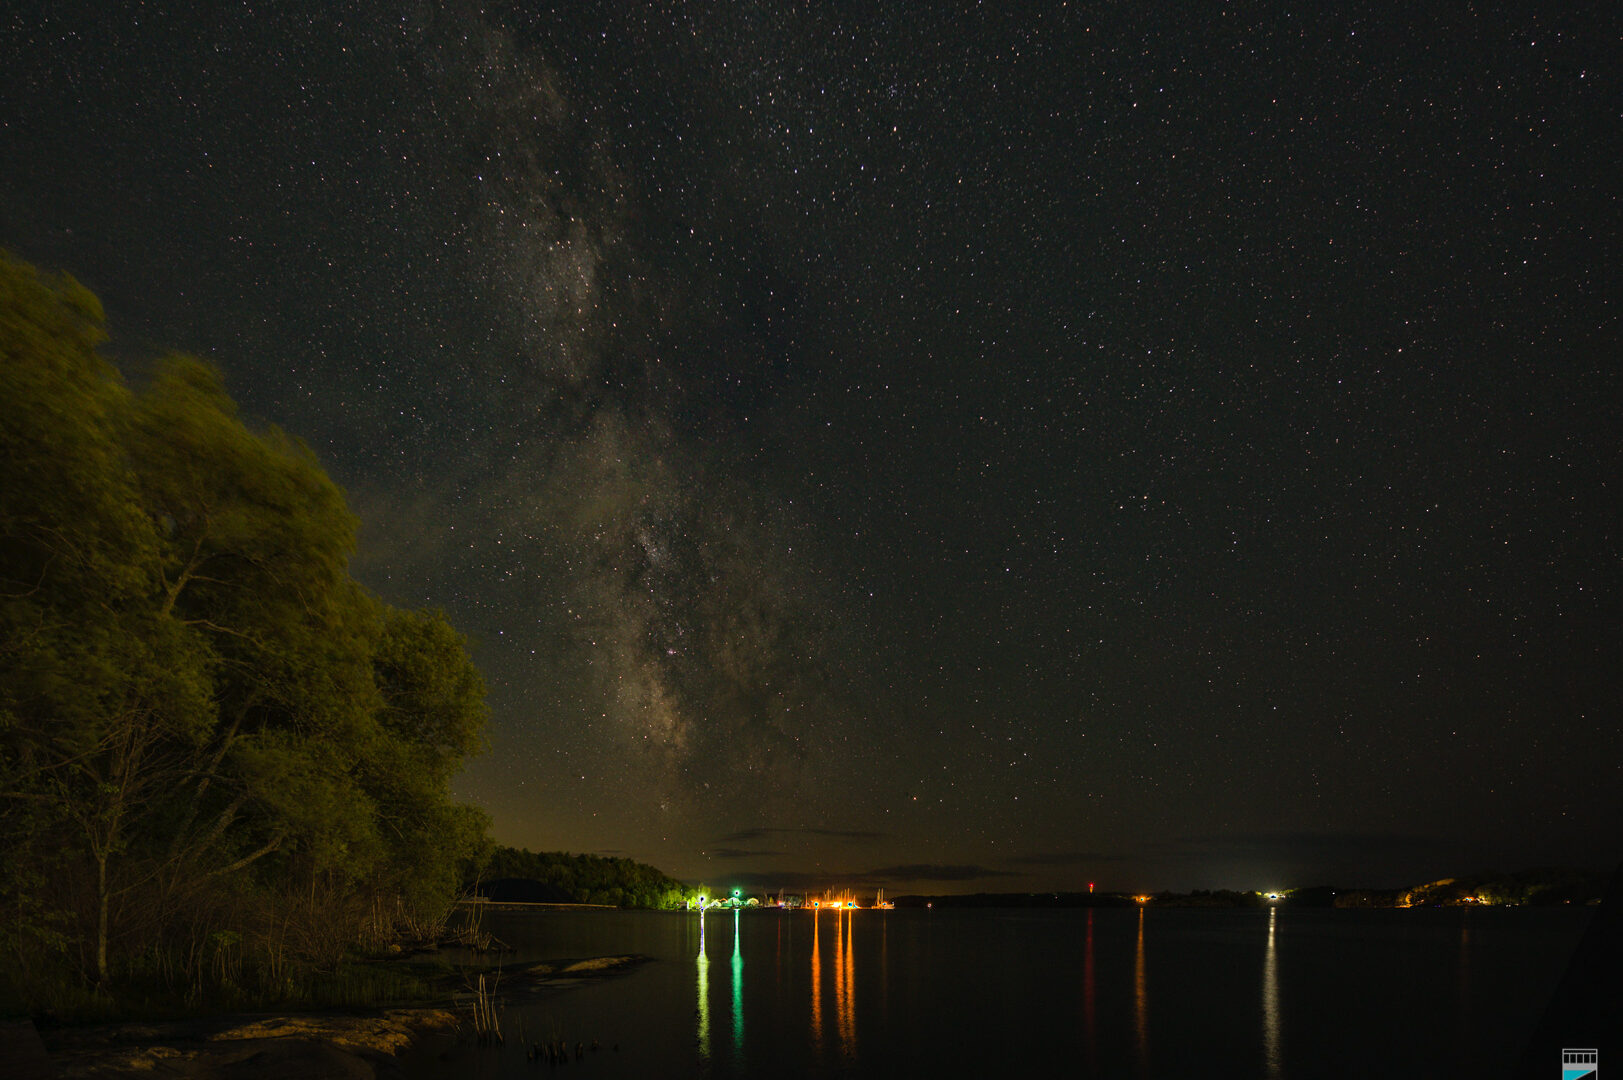 Milky Way seen from Champaigne Street Launch in Parry Sound